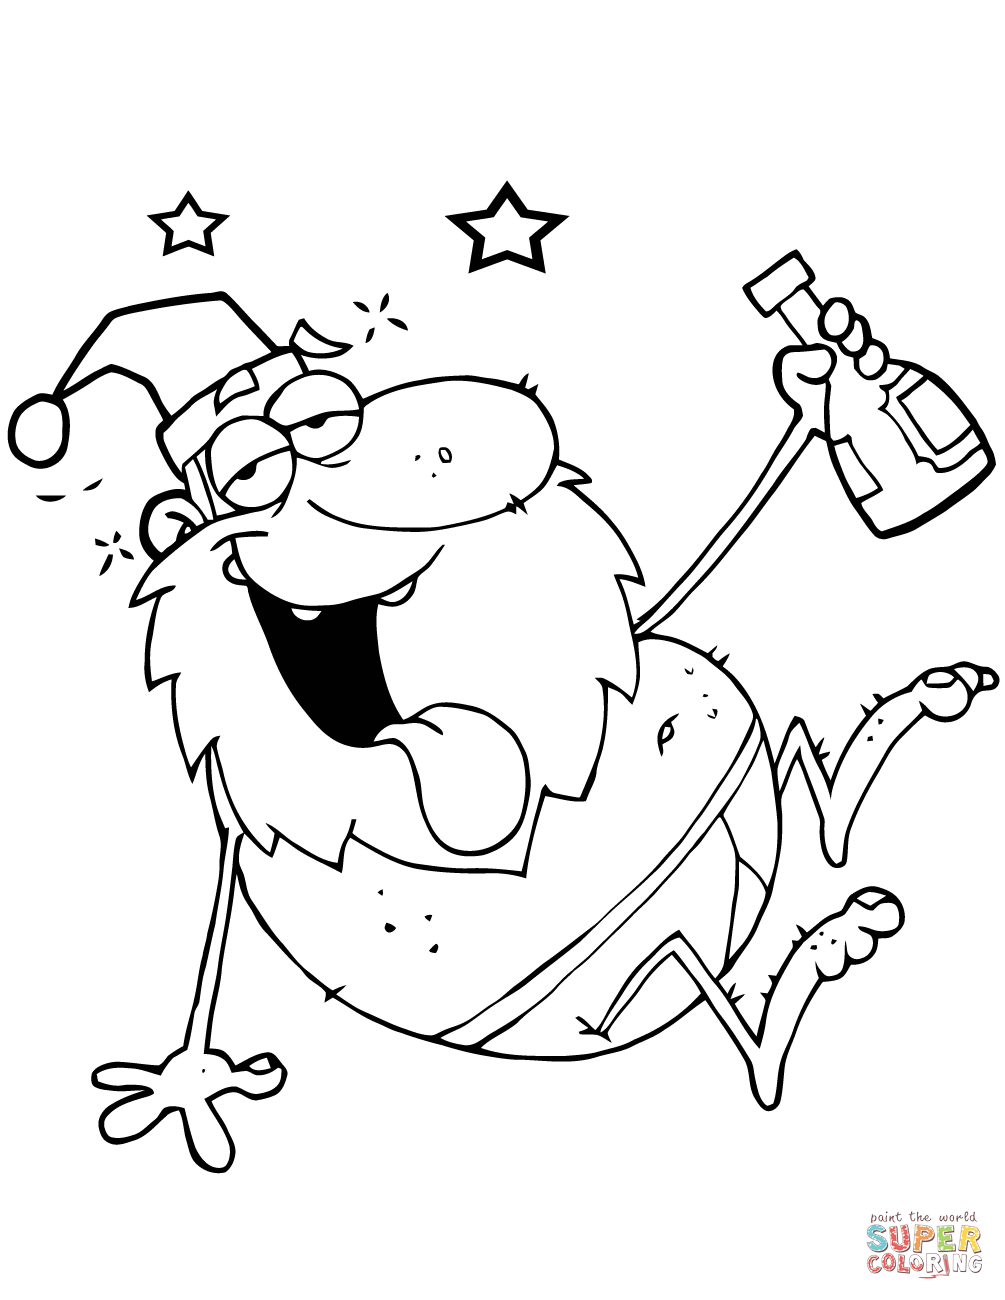 1005x1300 Santa Claus Coloring Pages Free Coloring Pages Santa Claus